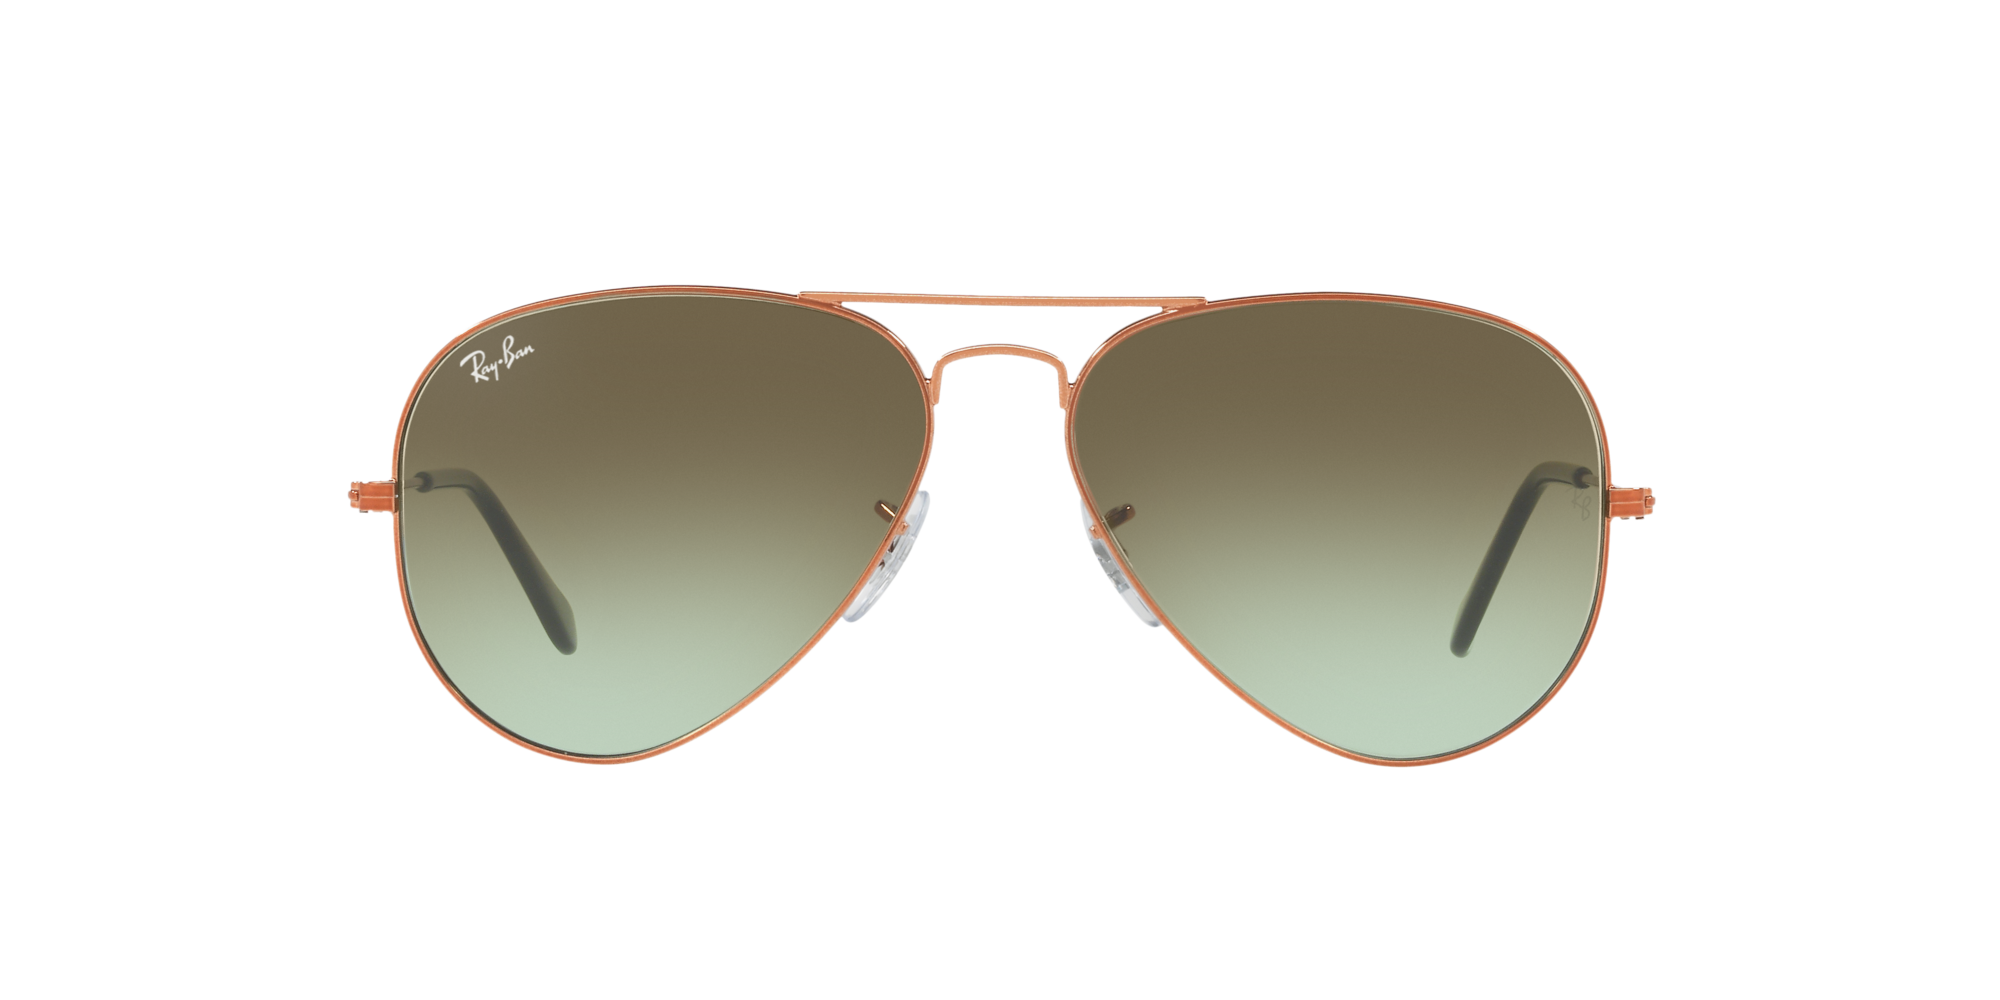 RAY-BAN AVIATOR RB 3025 9002A6 58mm-360